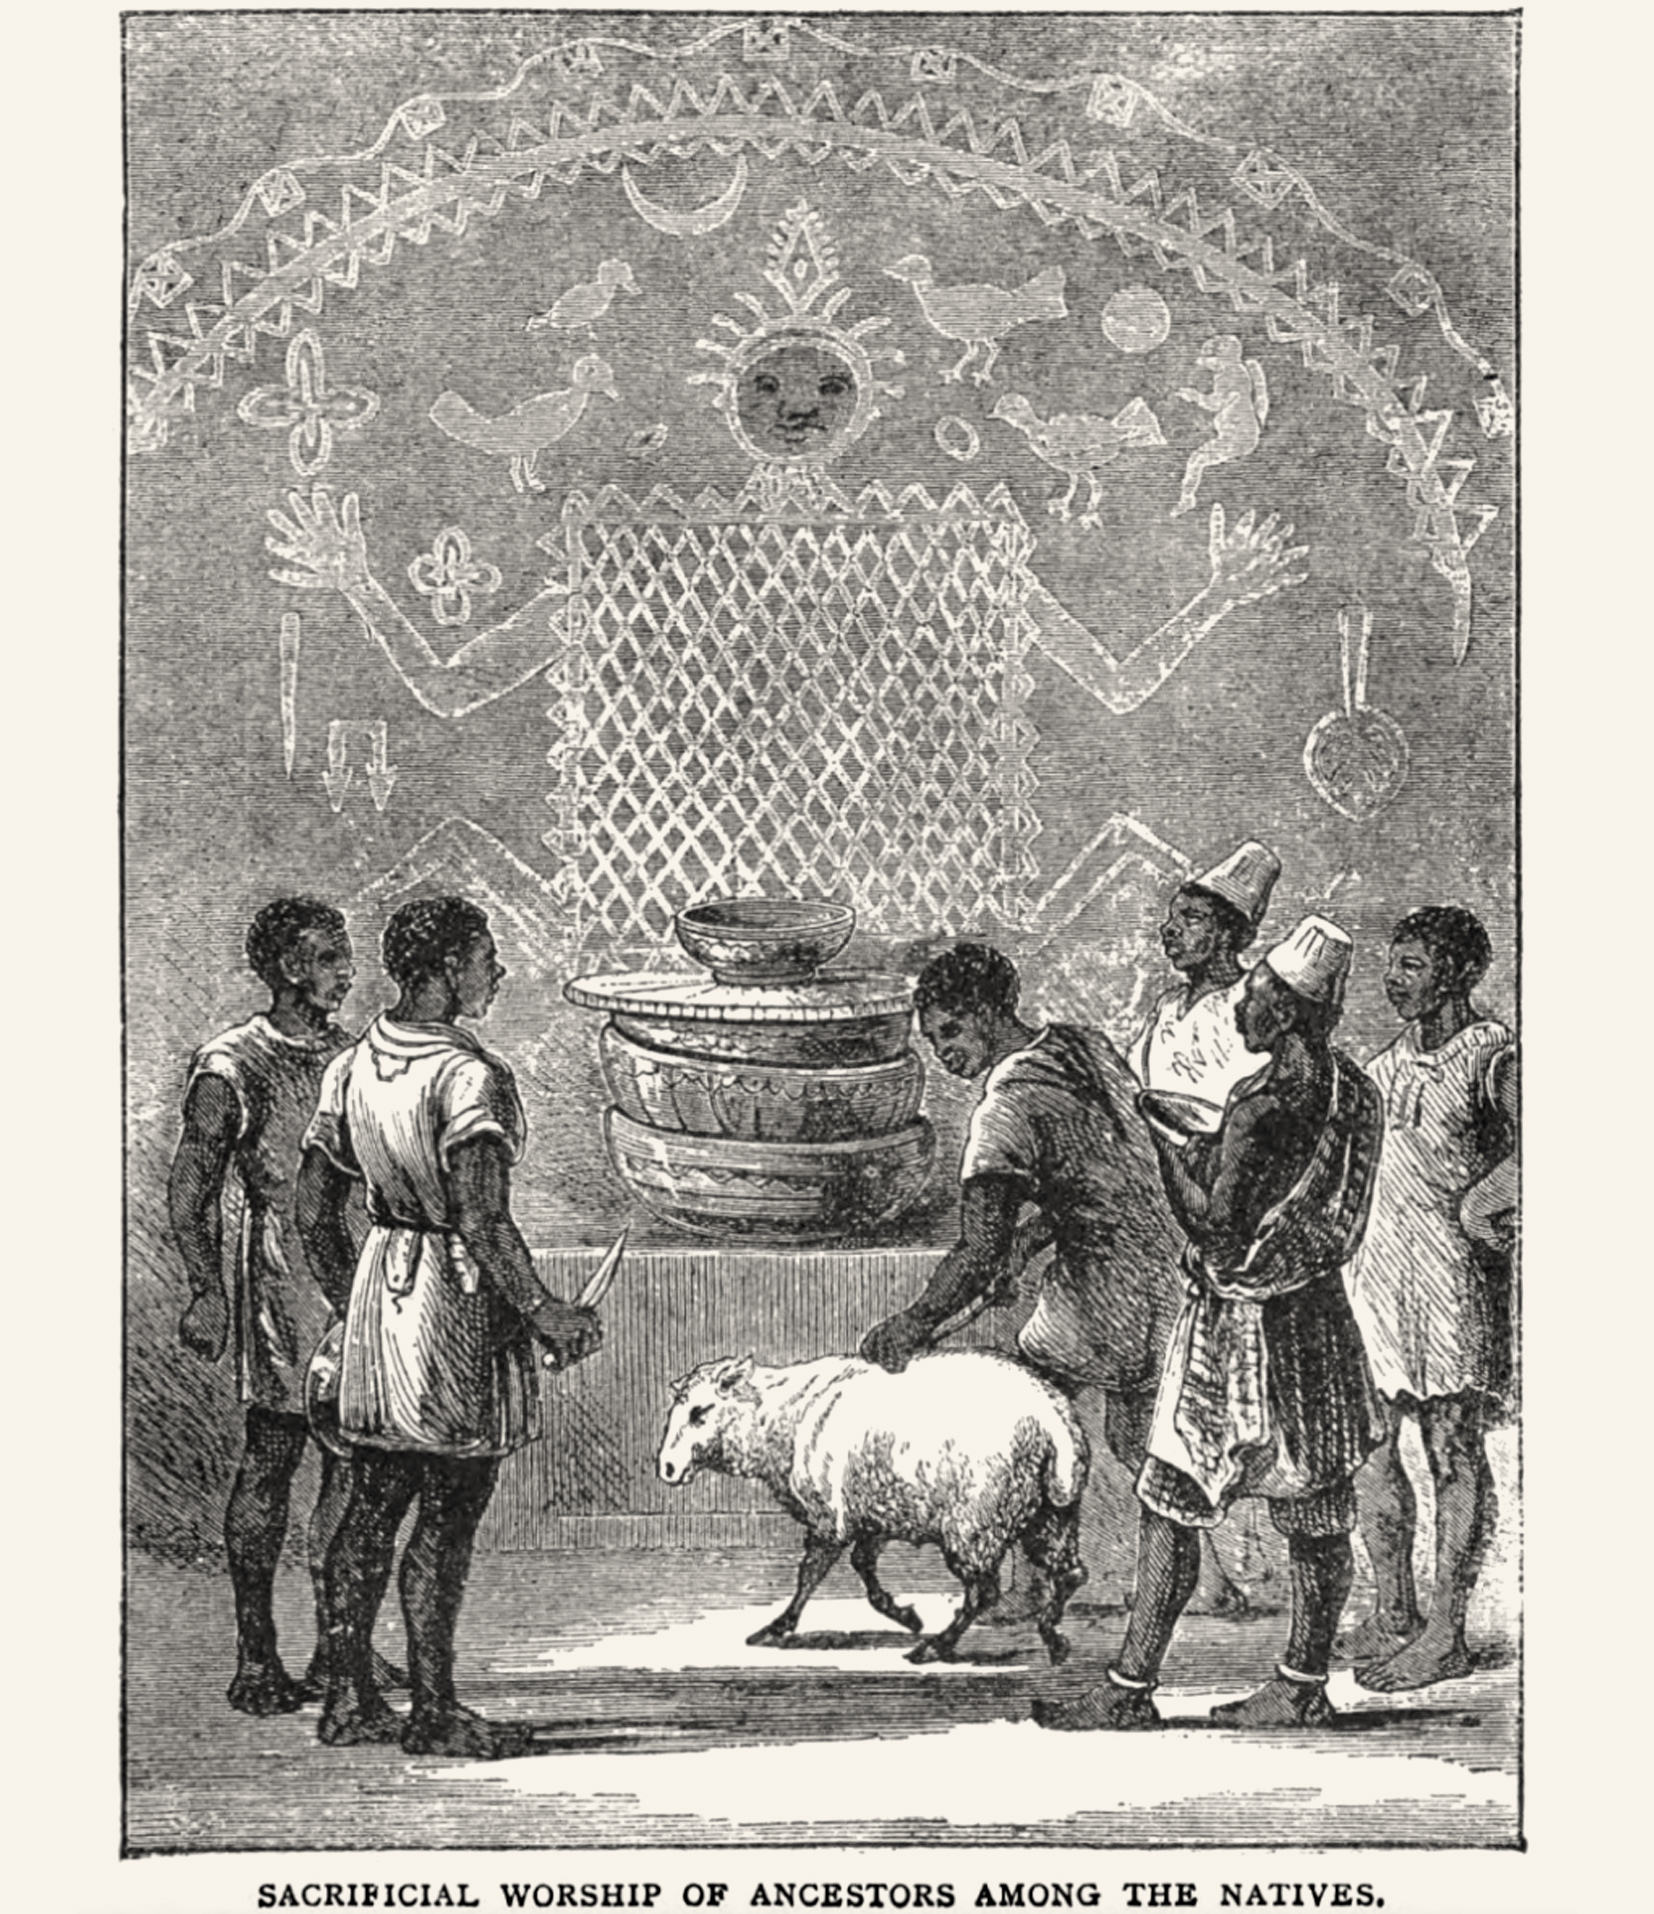 An image that should illustrate animal sacrifice as carried out by the Yorùbá people. CMS illustration, image Public Domain.